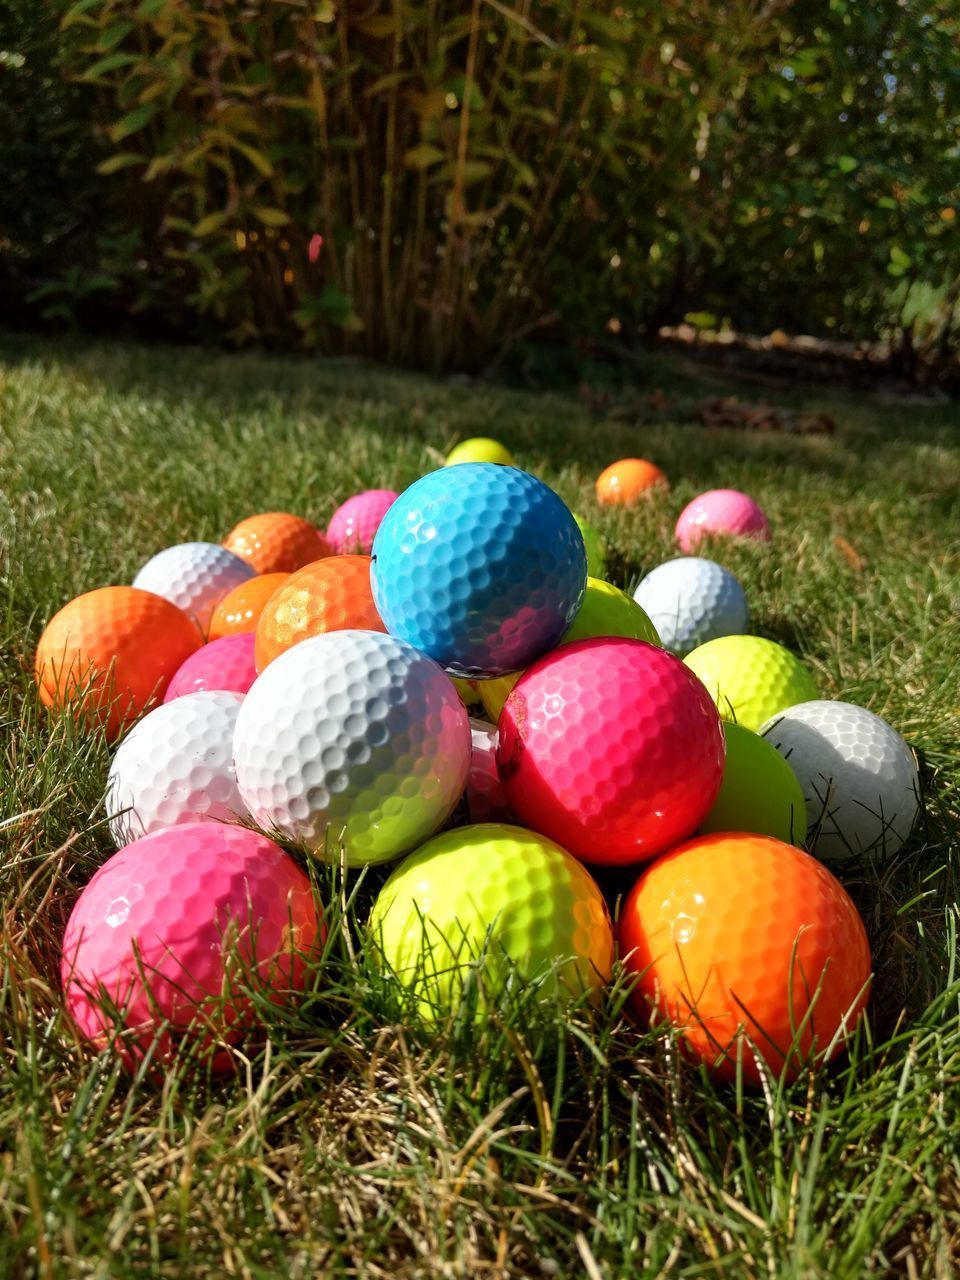 MULTI COLORED BALLS ON GRASS